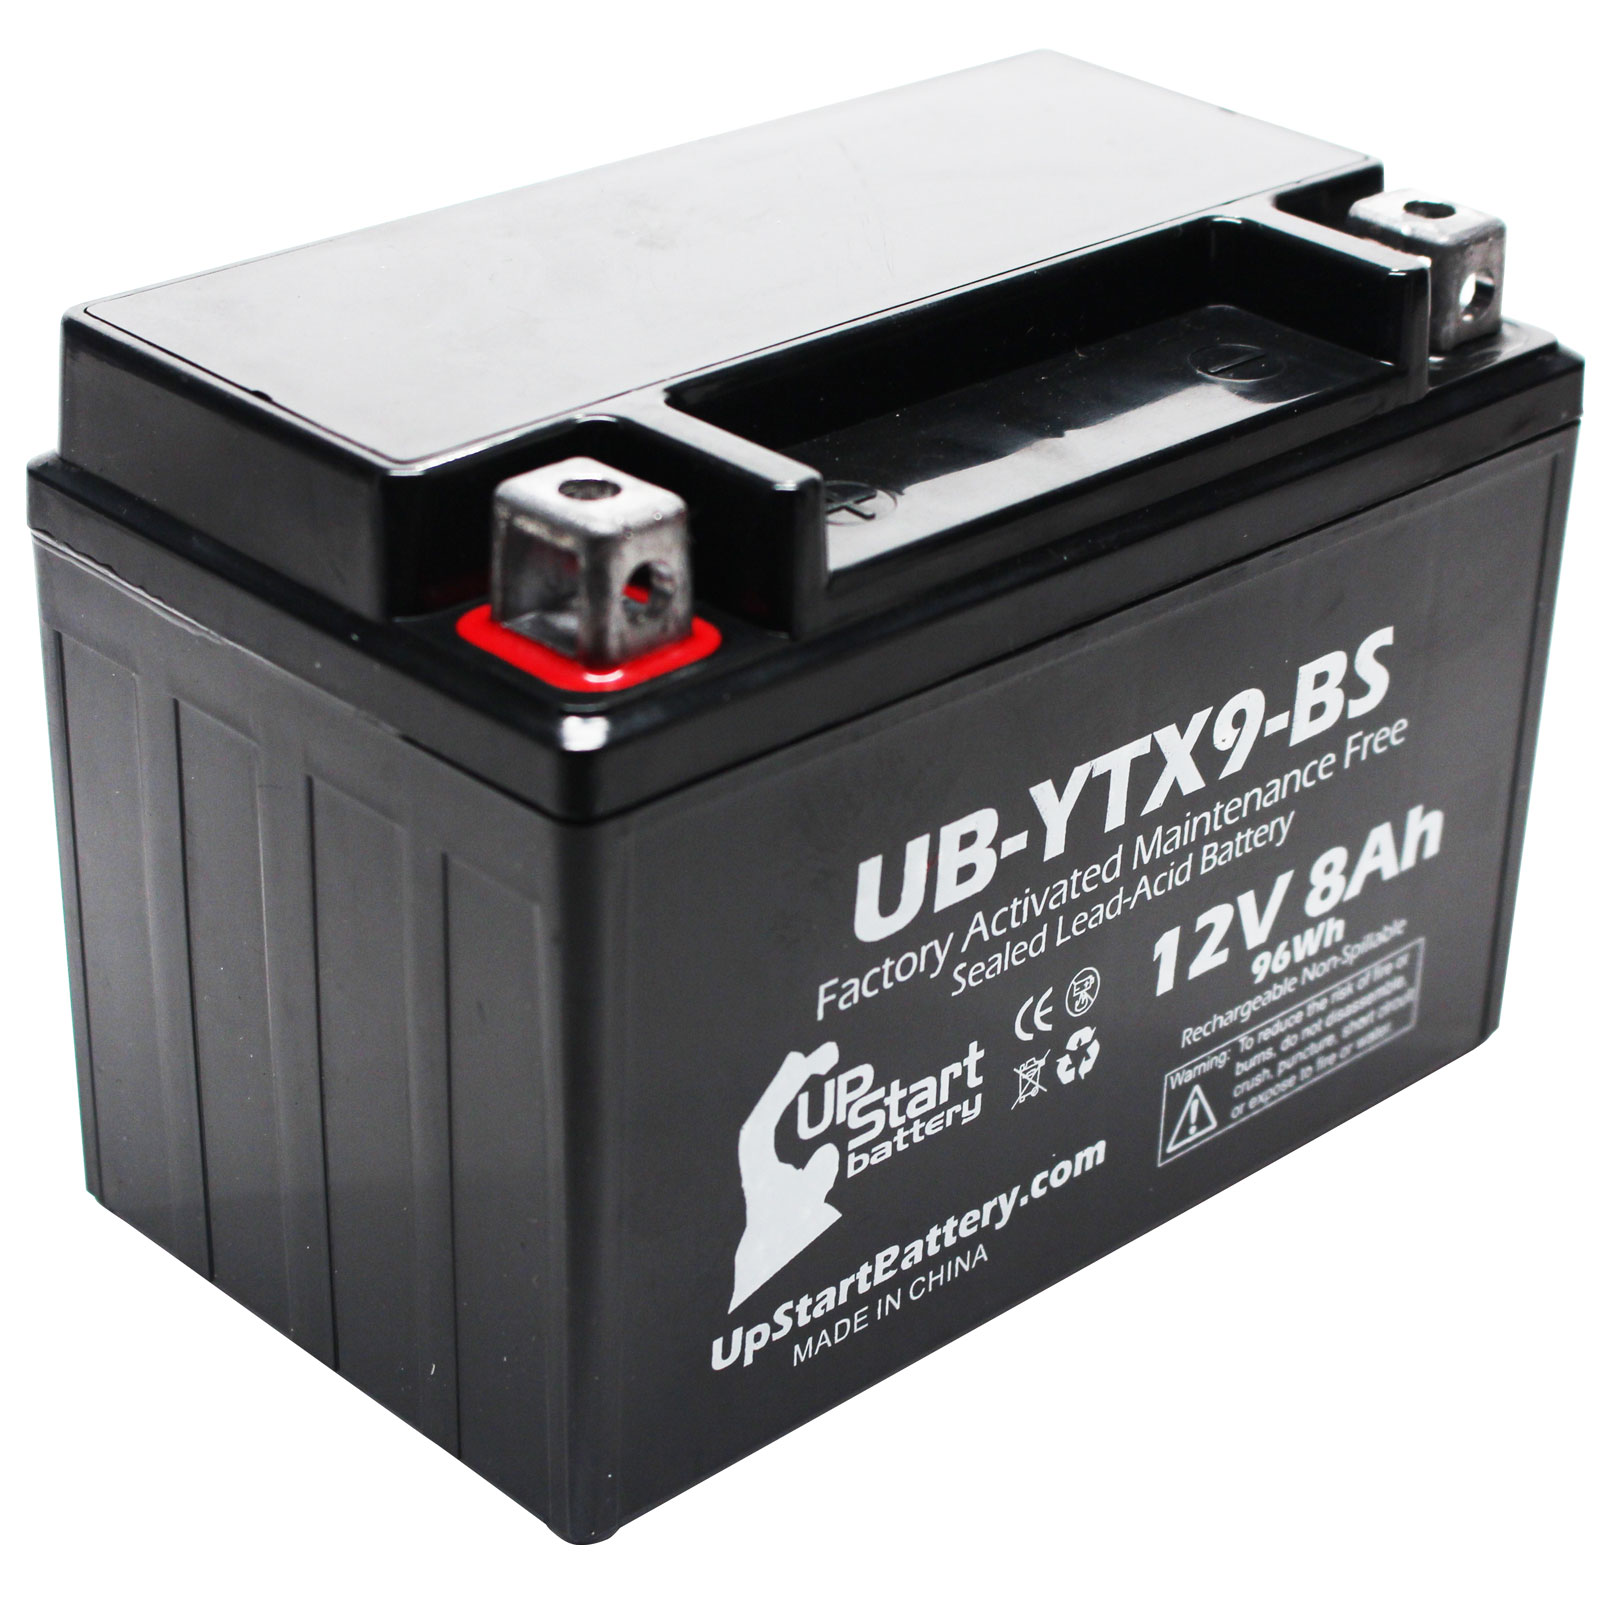 Replacement 2007 Kawasaki ZZR600 600CC Factory Activated, Maintenance Free, Motorcycle Battery - 12V, 8Ah, UB-YTX9-BS